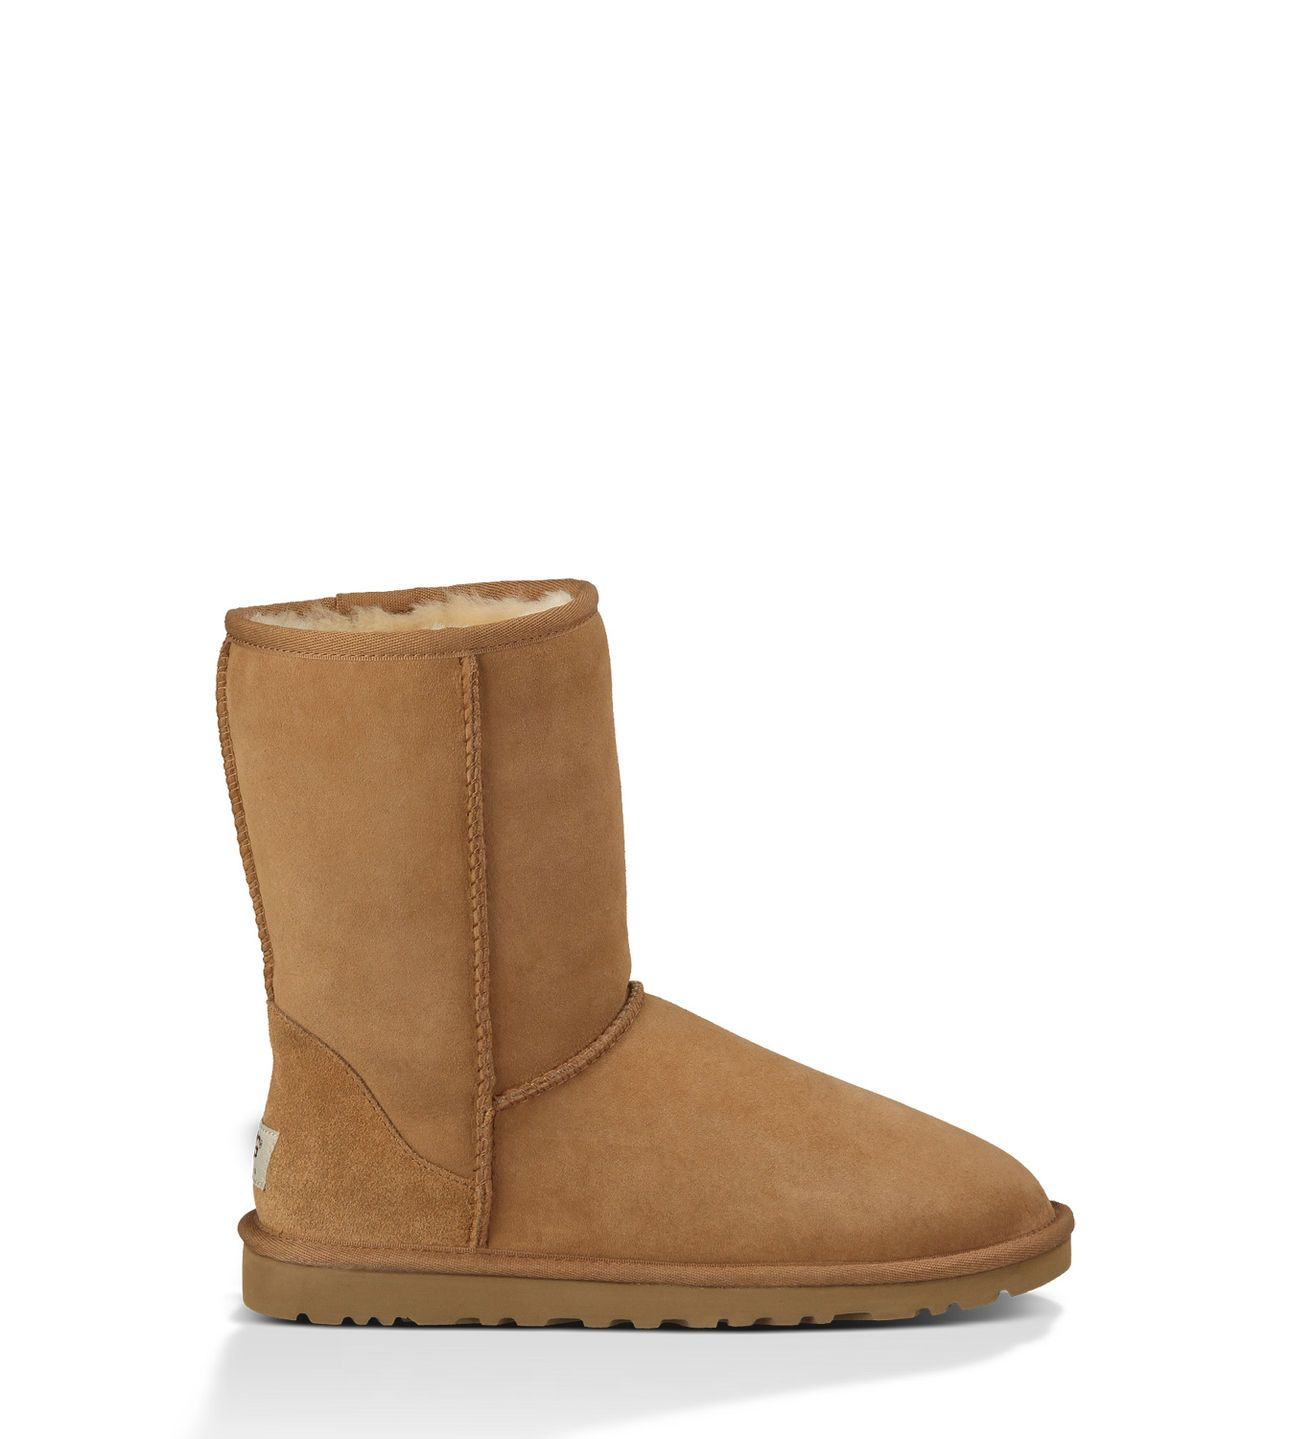 The OFFICIAL UGG® store has the Classic Short in the latest colors and styles with